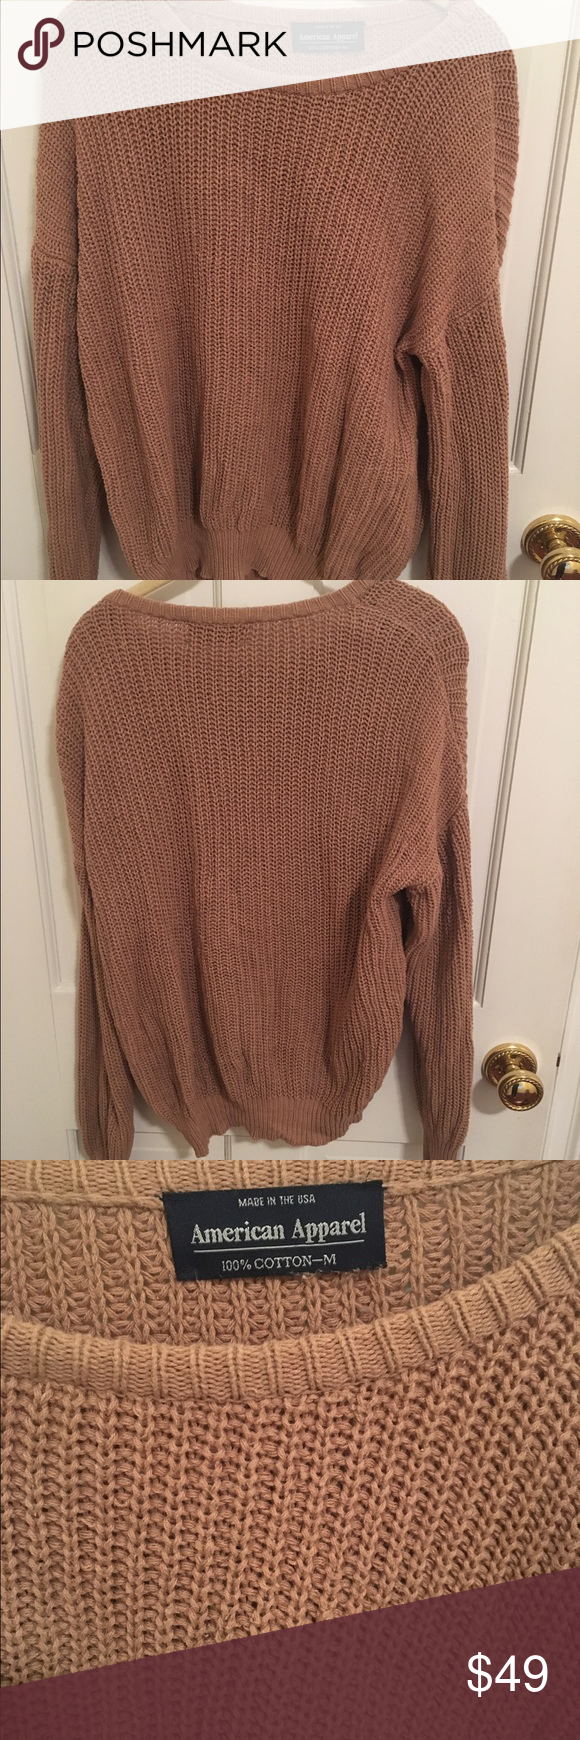 Beige American Apparel sweater Beige American Apparel sweater, cable knit, good condition American Apparel Sweaters Crew & Scoop Necks